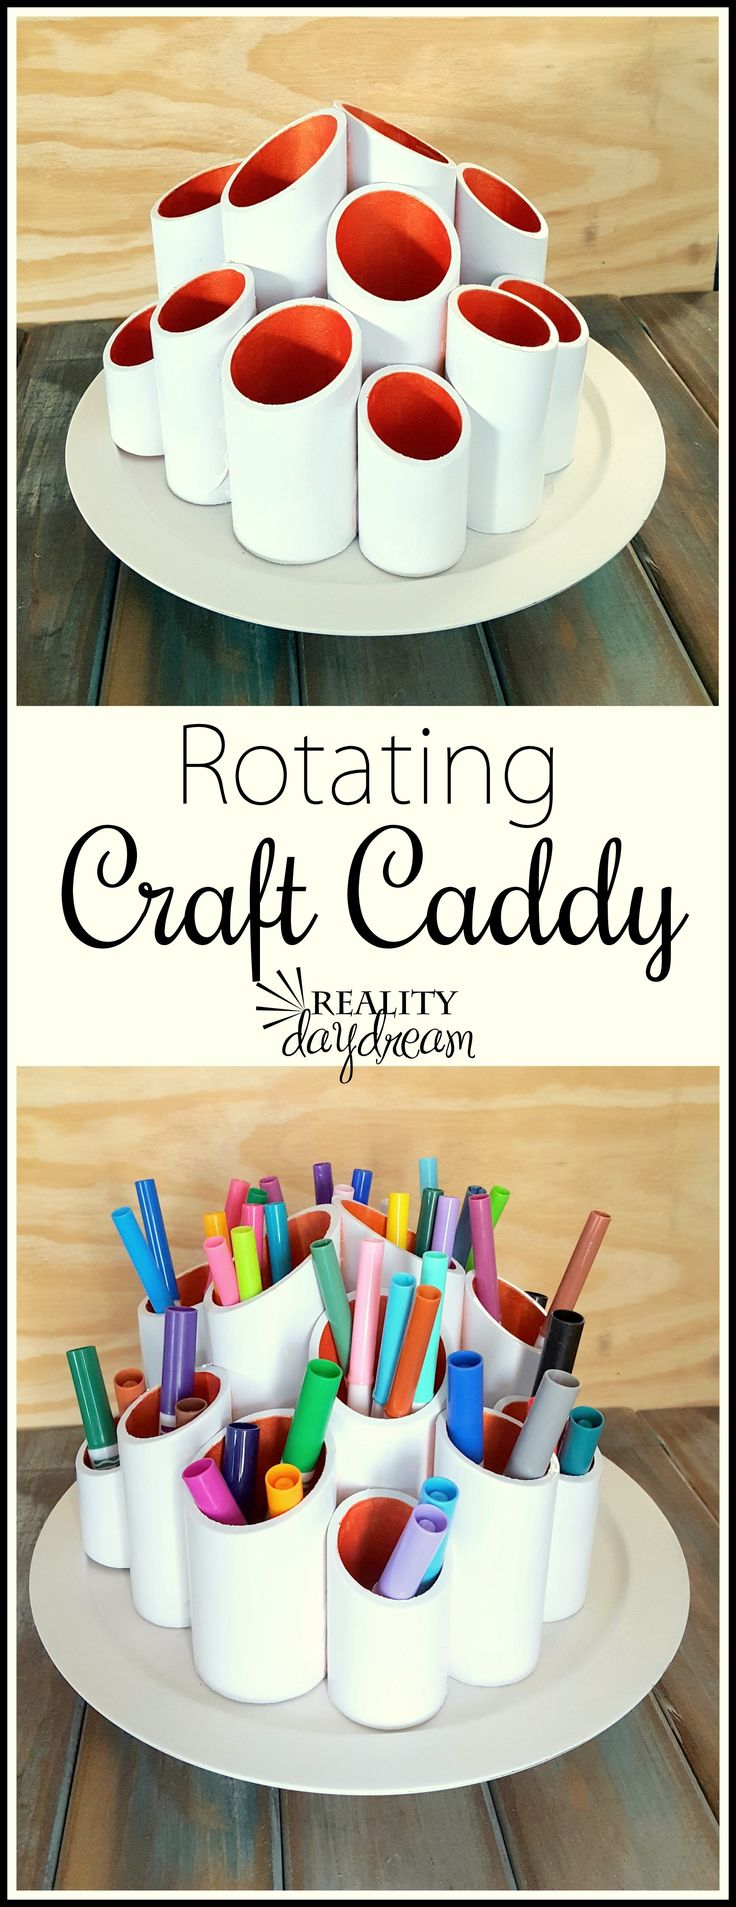 Make-a-Rotating-Craft-Caddy-using-PVC-pipes-and-a-lazy-susan-Reality-Daydream-2.jpg (2010×5210)